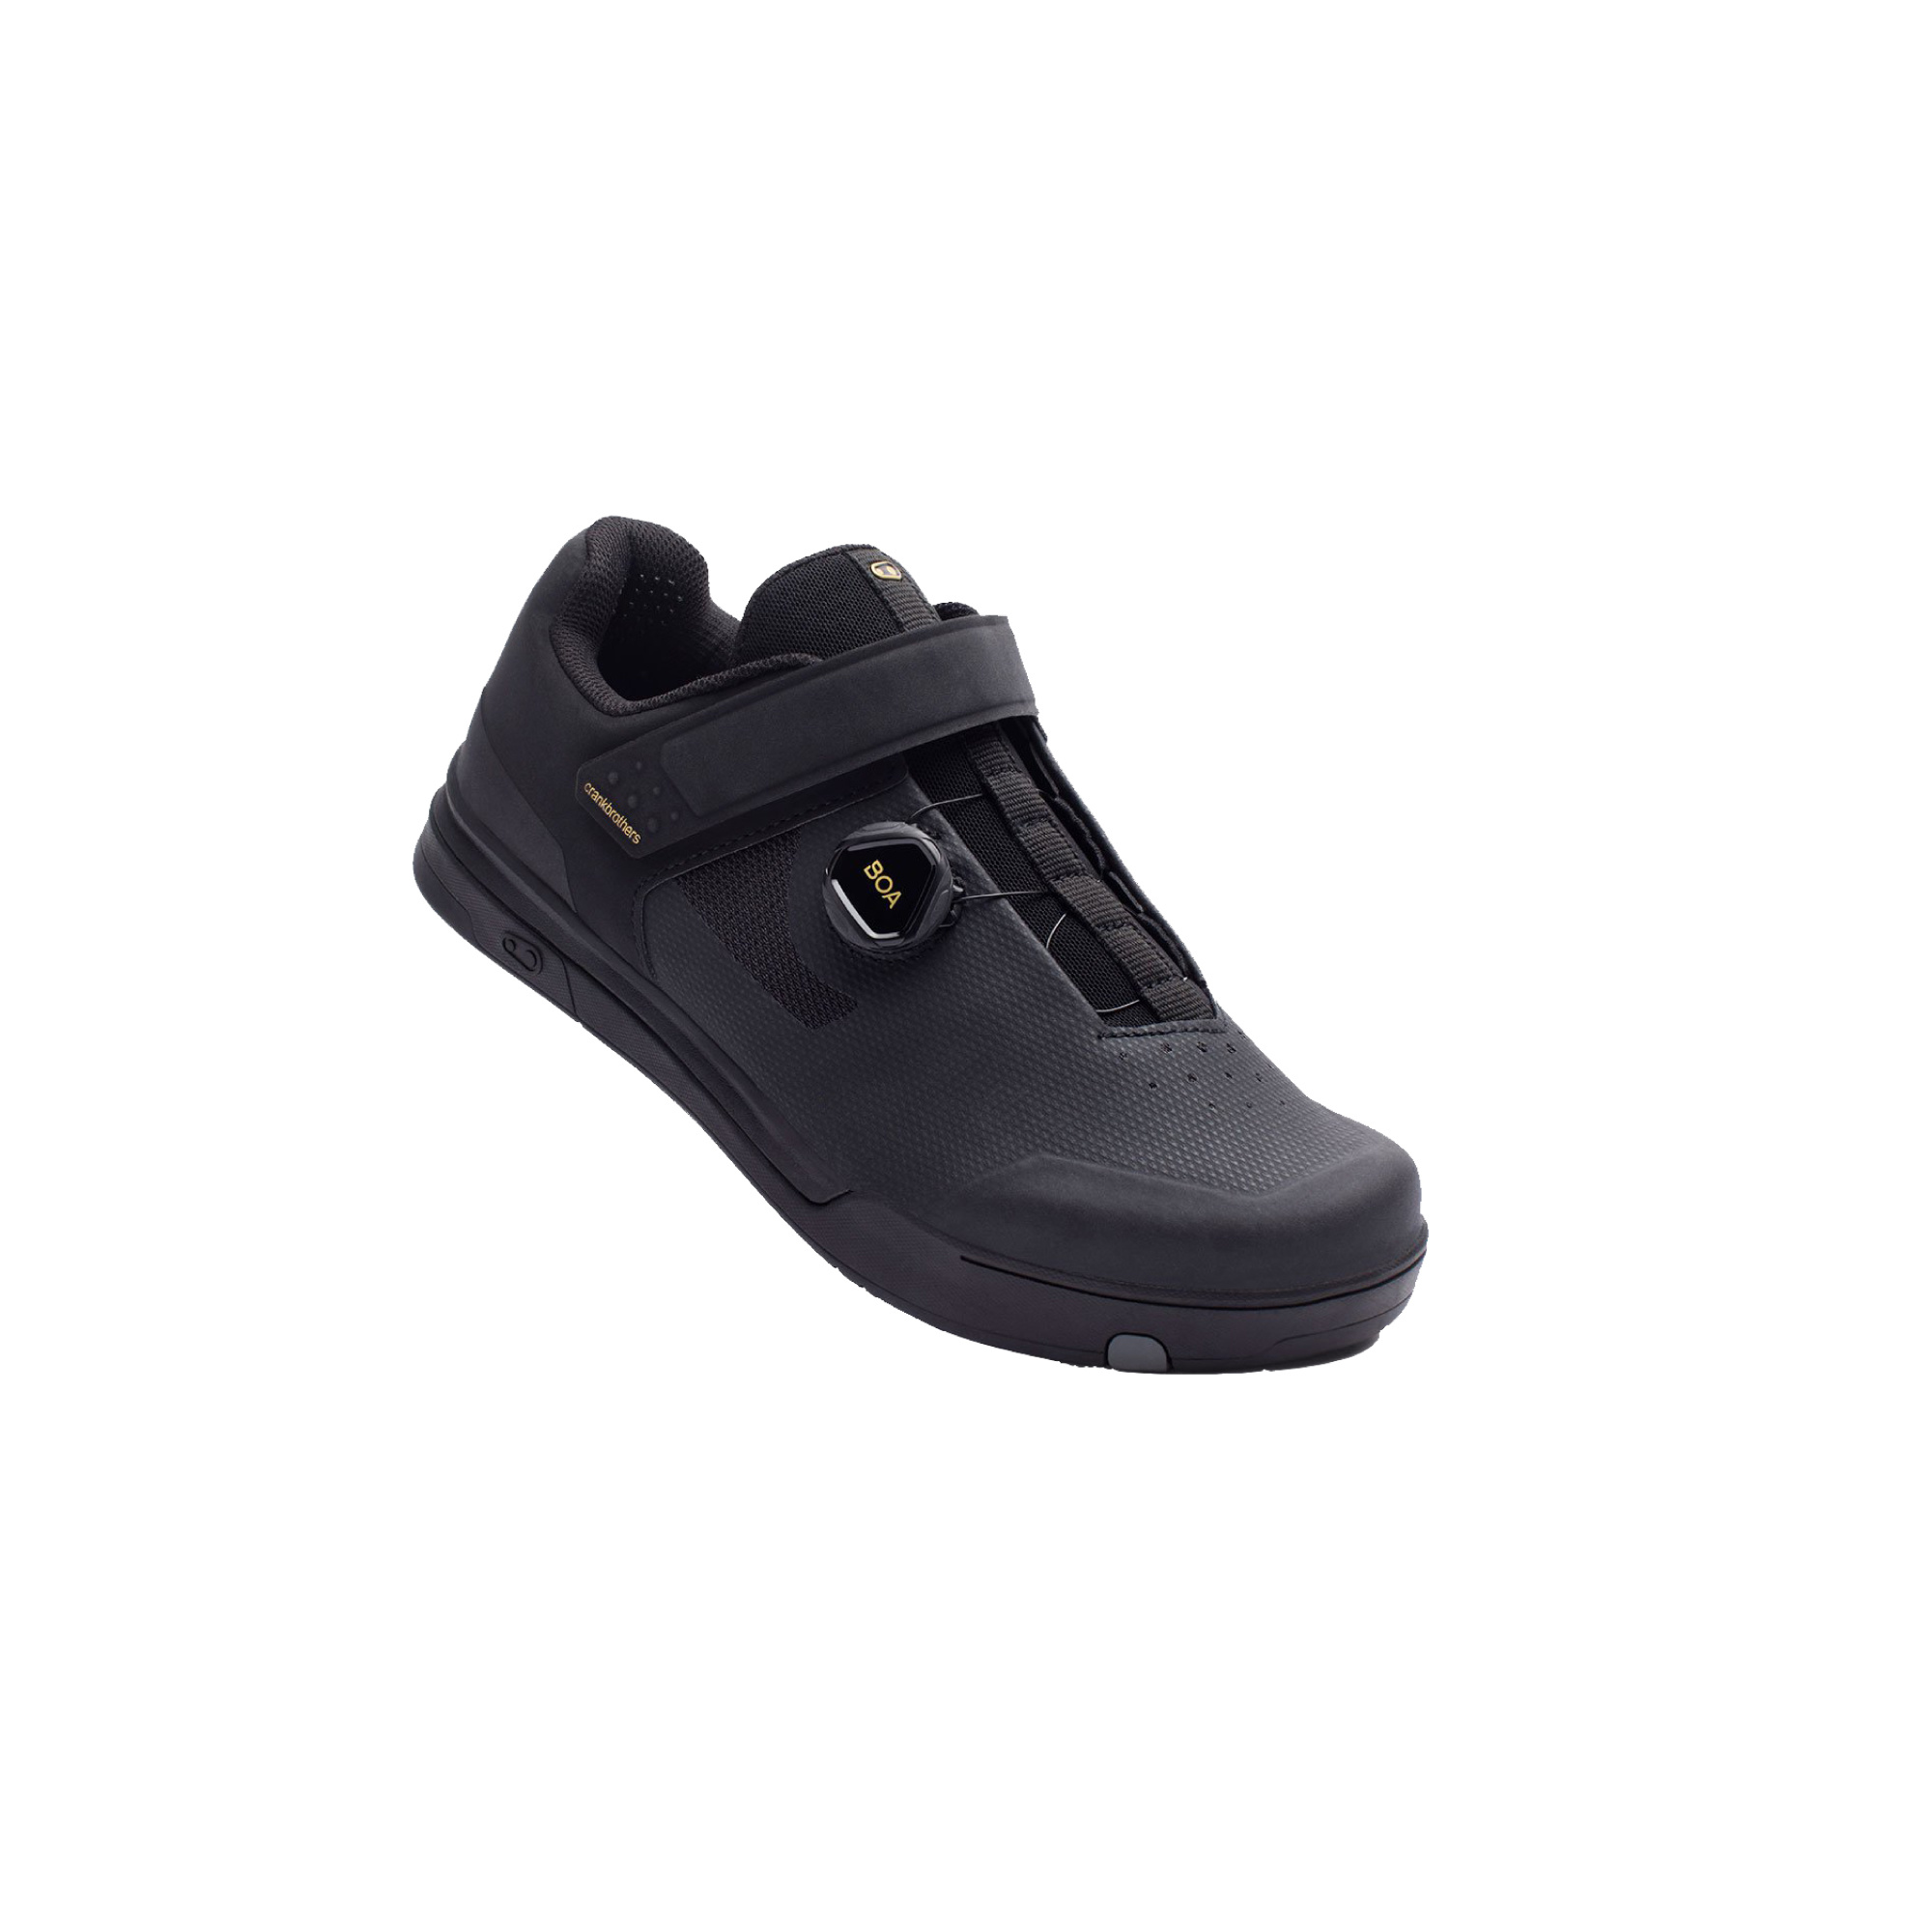 Shoes Mallet BOA Clipless Spd-4